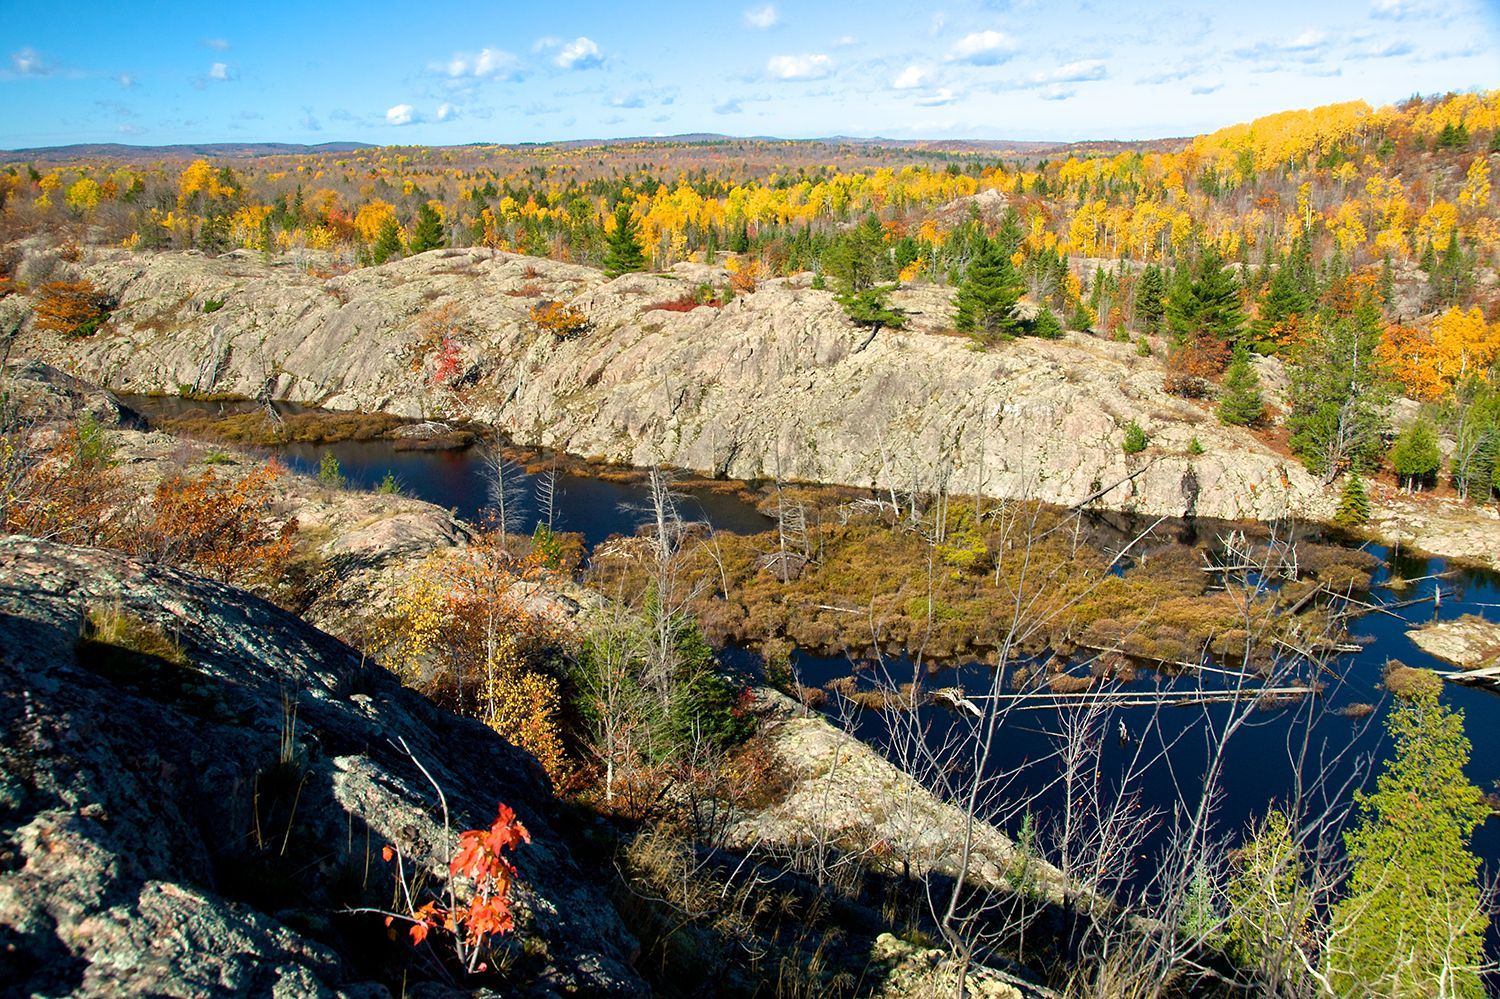 Rock formation along the side of a lake. Rolling forests changing color in the background.